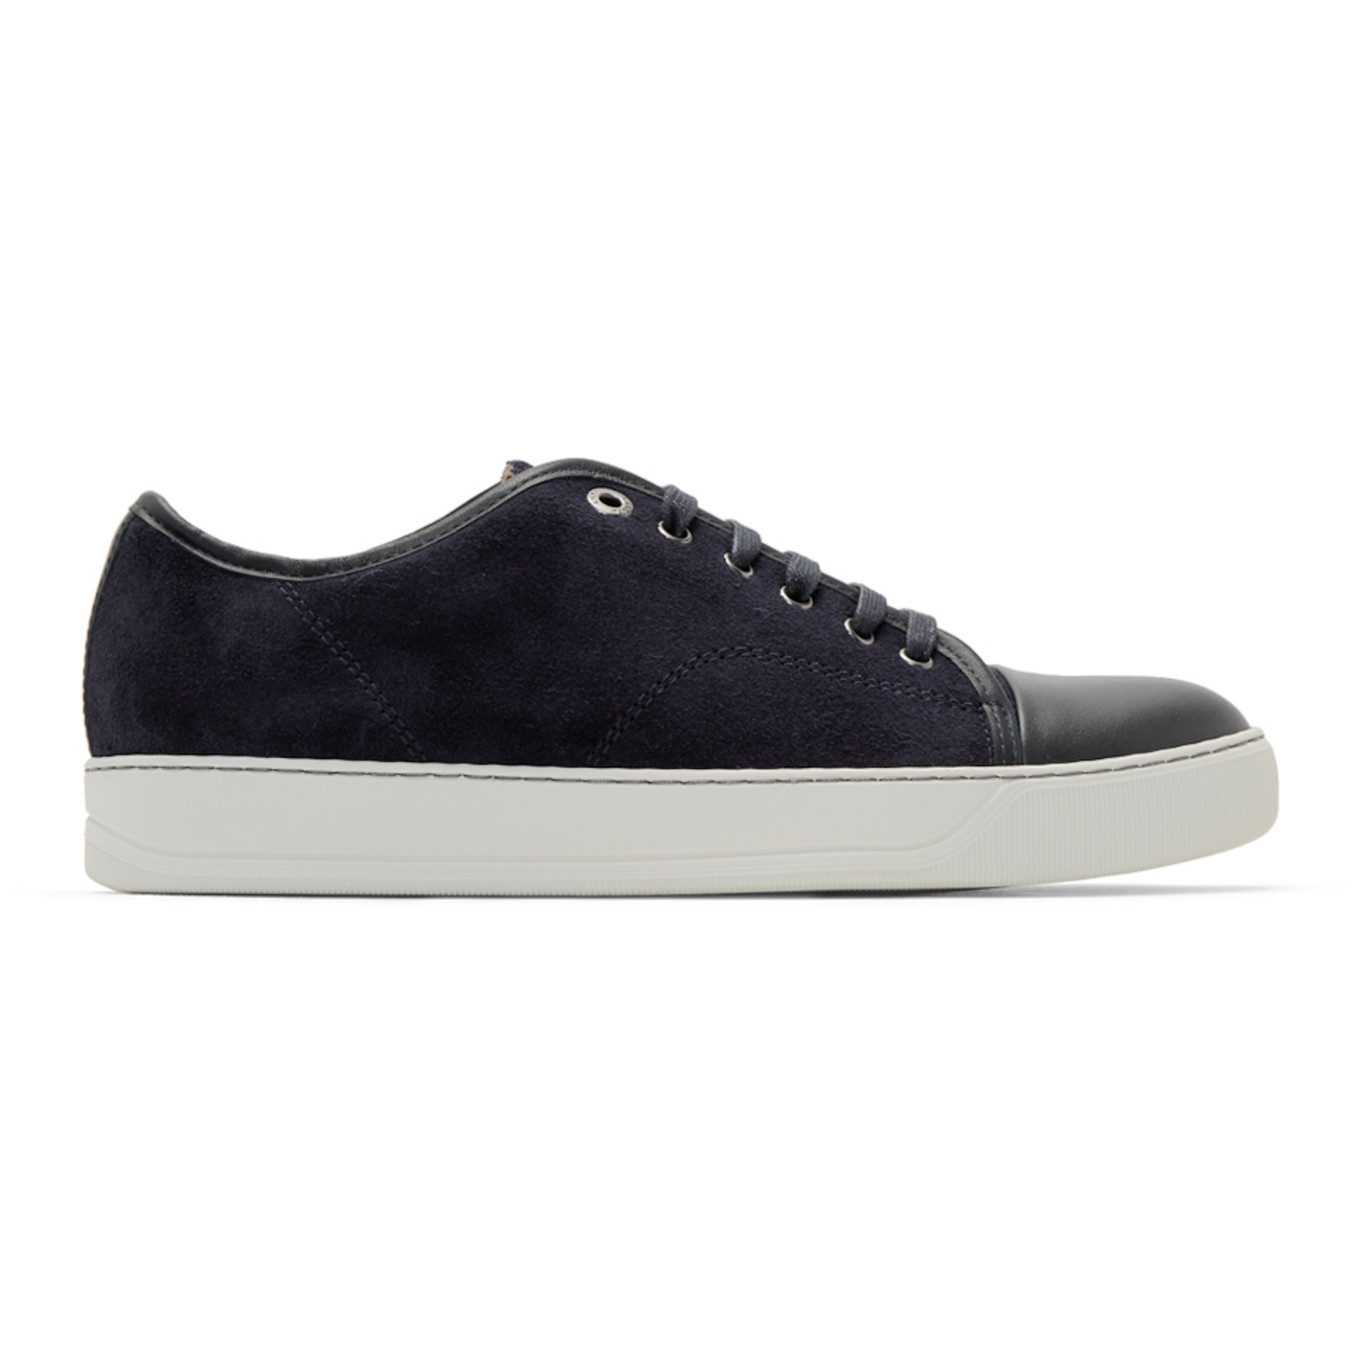 Blue Suede Sneakers by Lanvin